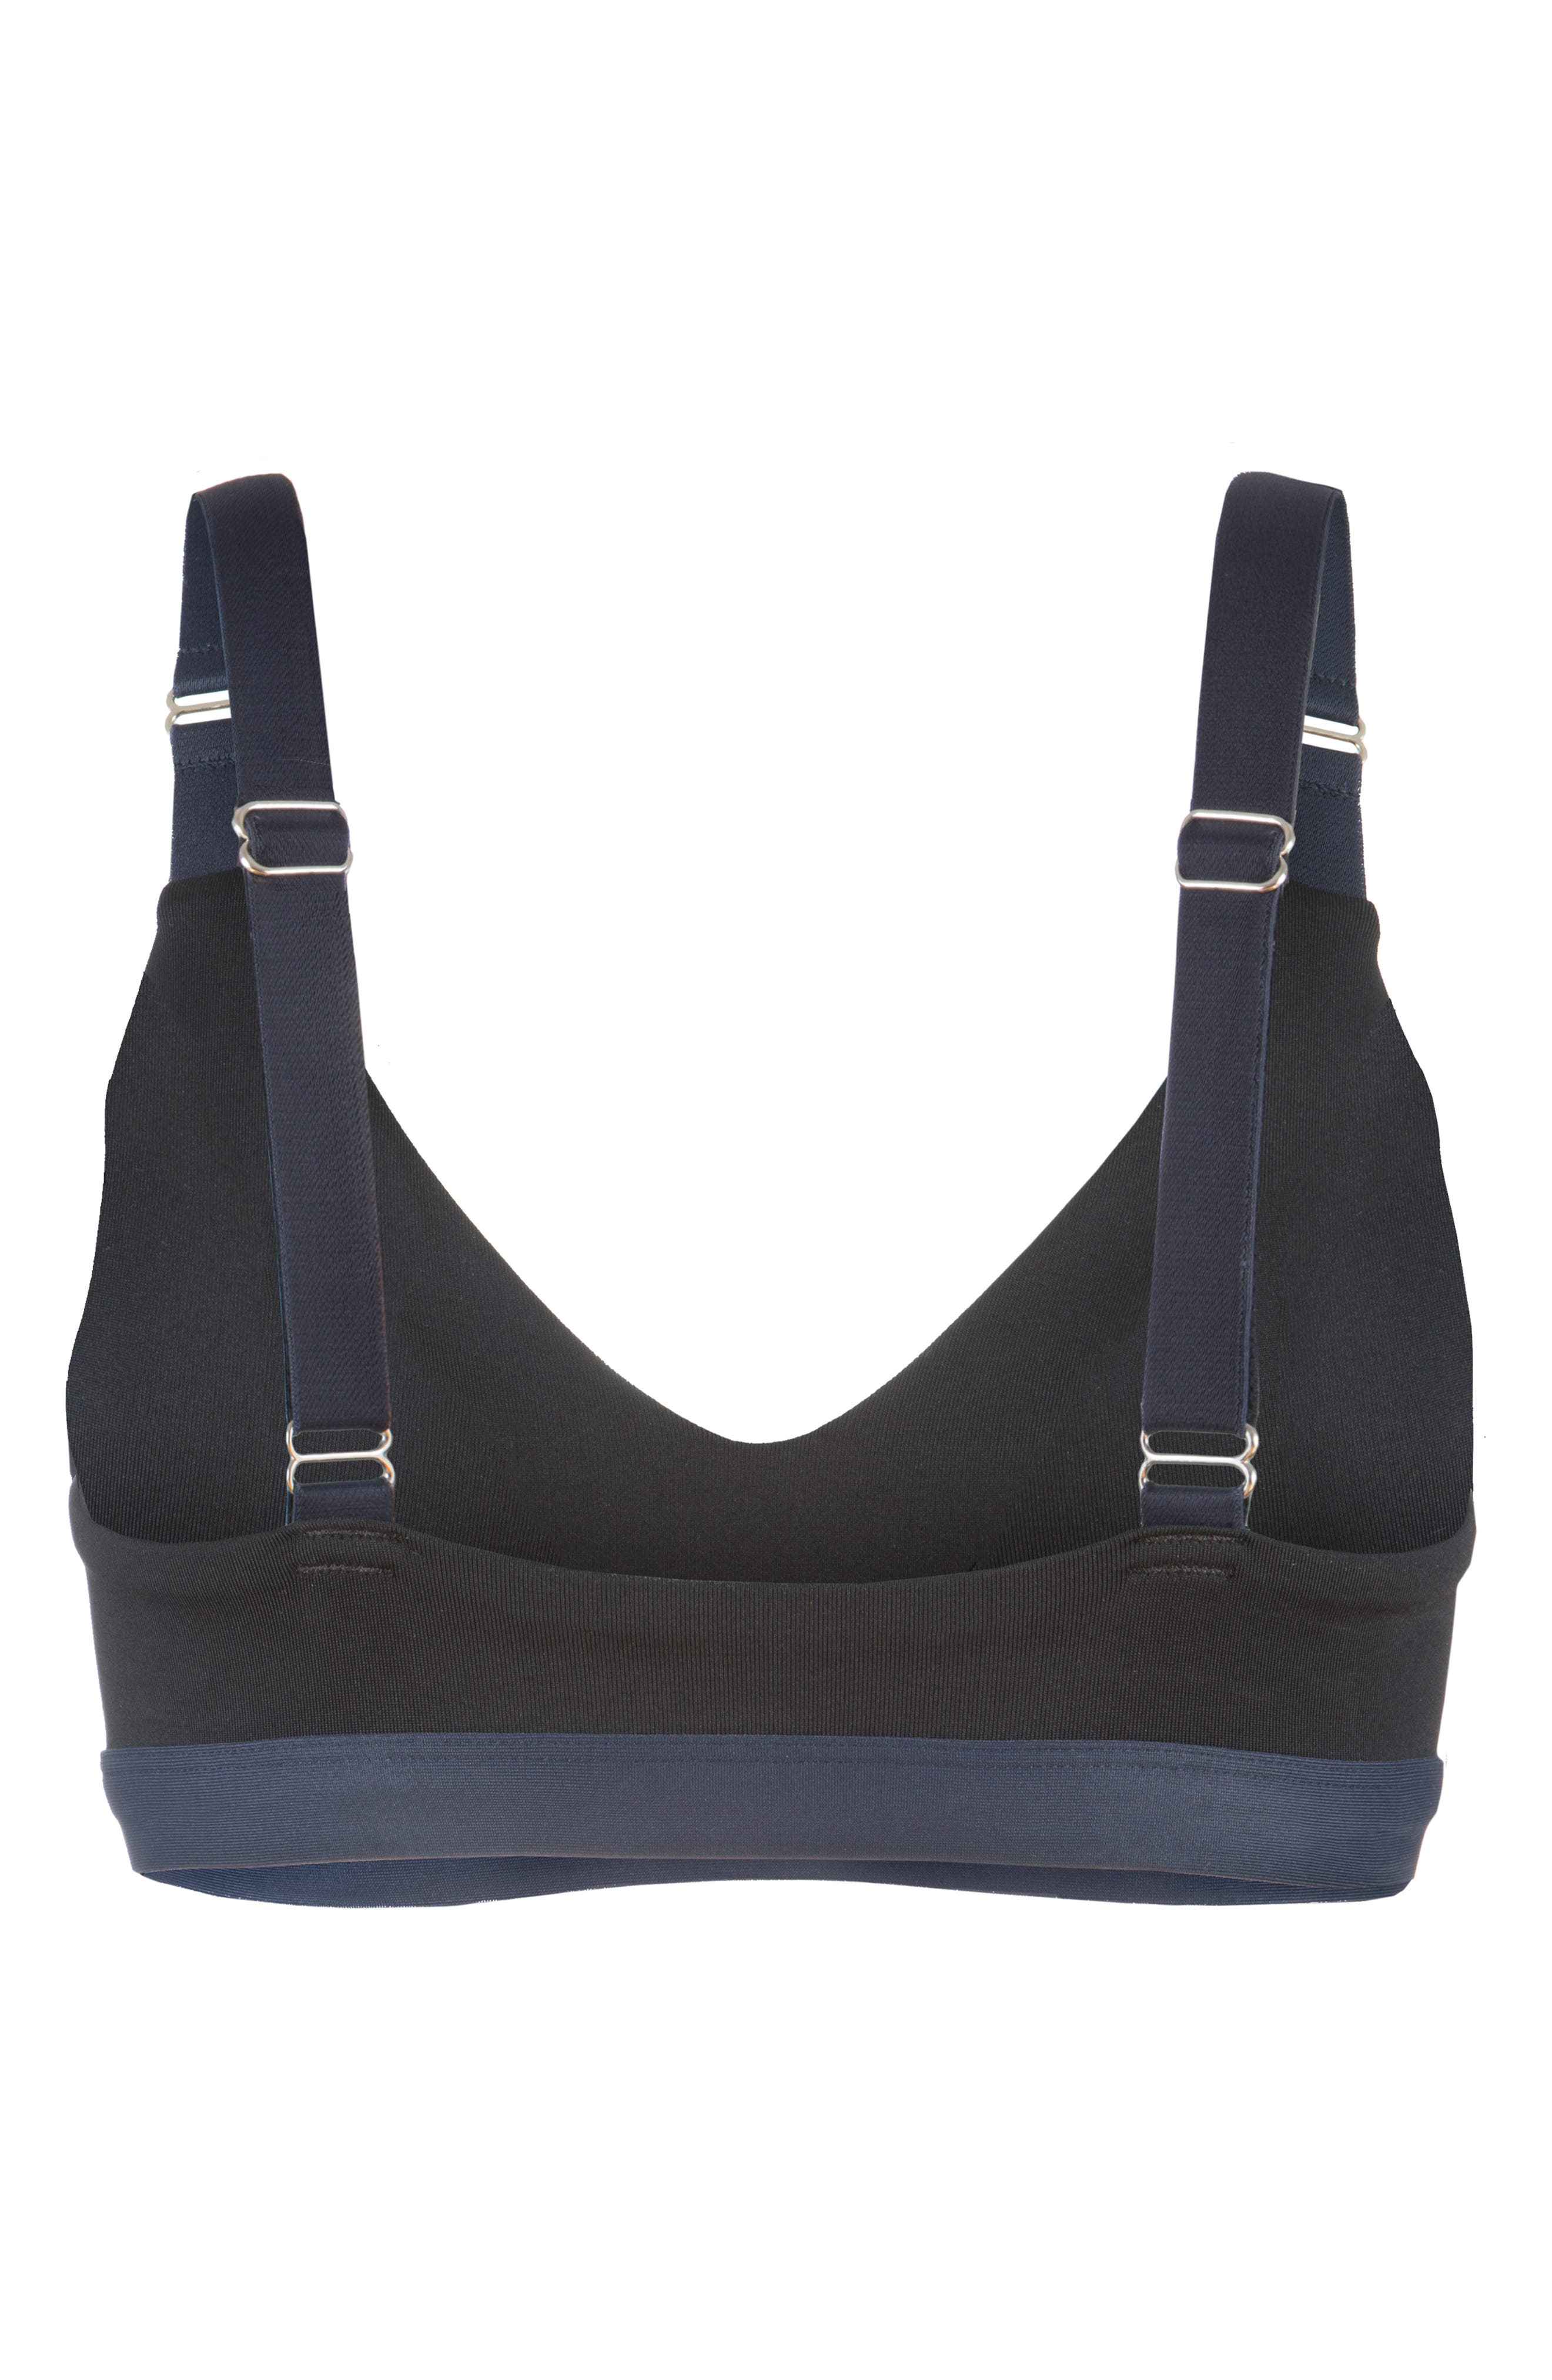 The Active Colorblock Sports Bralette,                             Alternate thumbnail 3, color,                             JET BLACK AND LIVELY NAVY